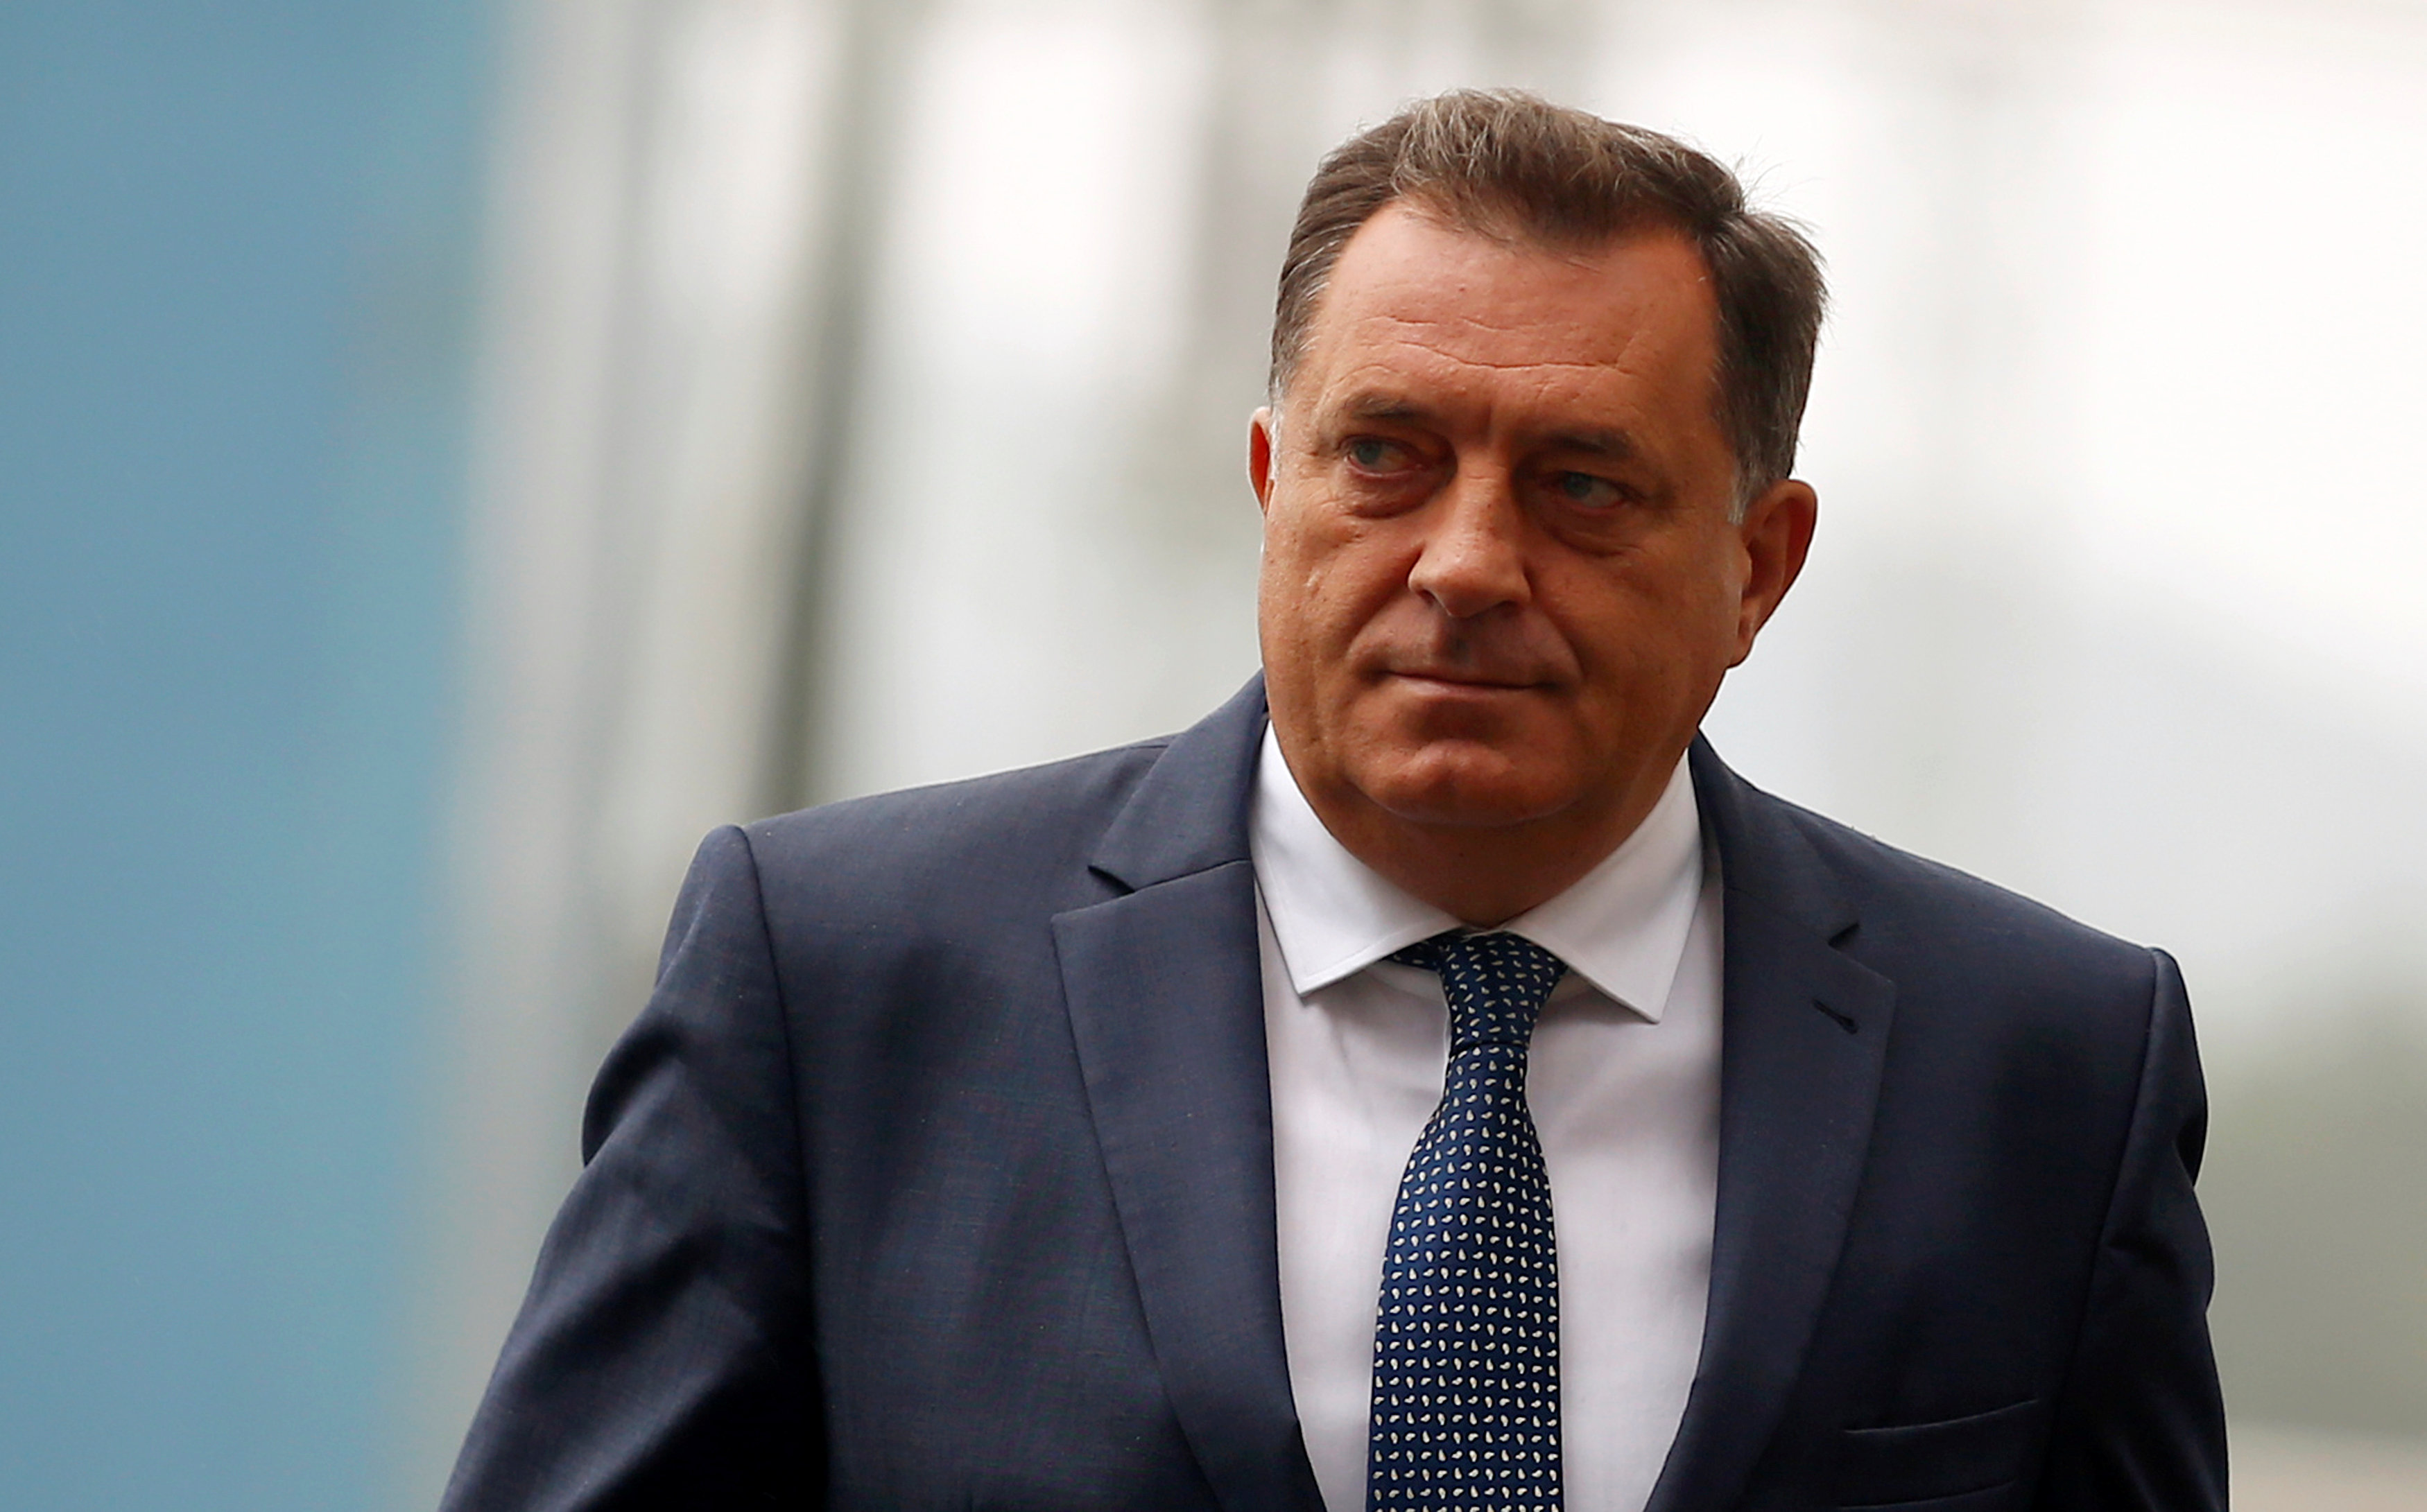 President of the Republika Srpska, Milorad Dodik, arrives to the ceremony marking the official commissioning of a 300 MW coal-fired power plant, the first and biggest private investment in the country's energy sector by UK based UK-based Energy Financing